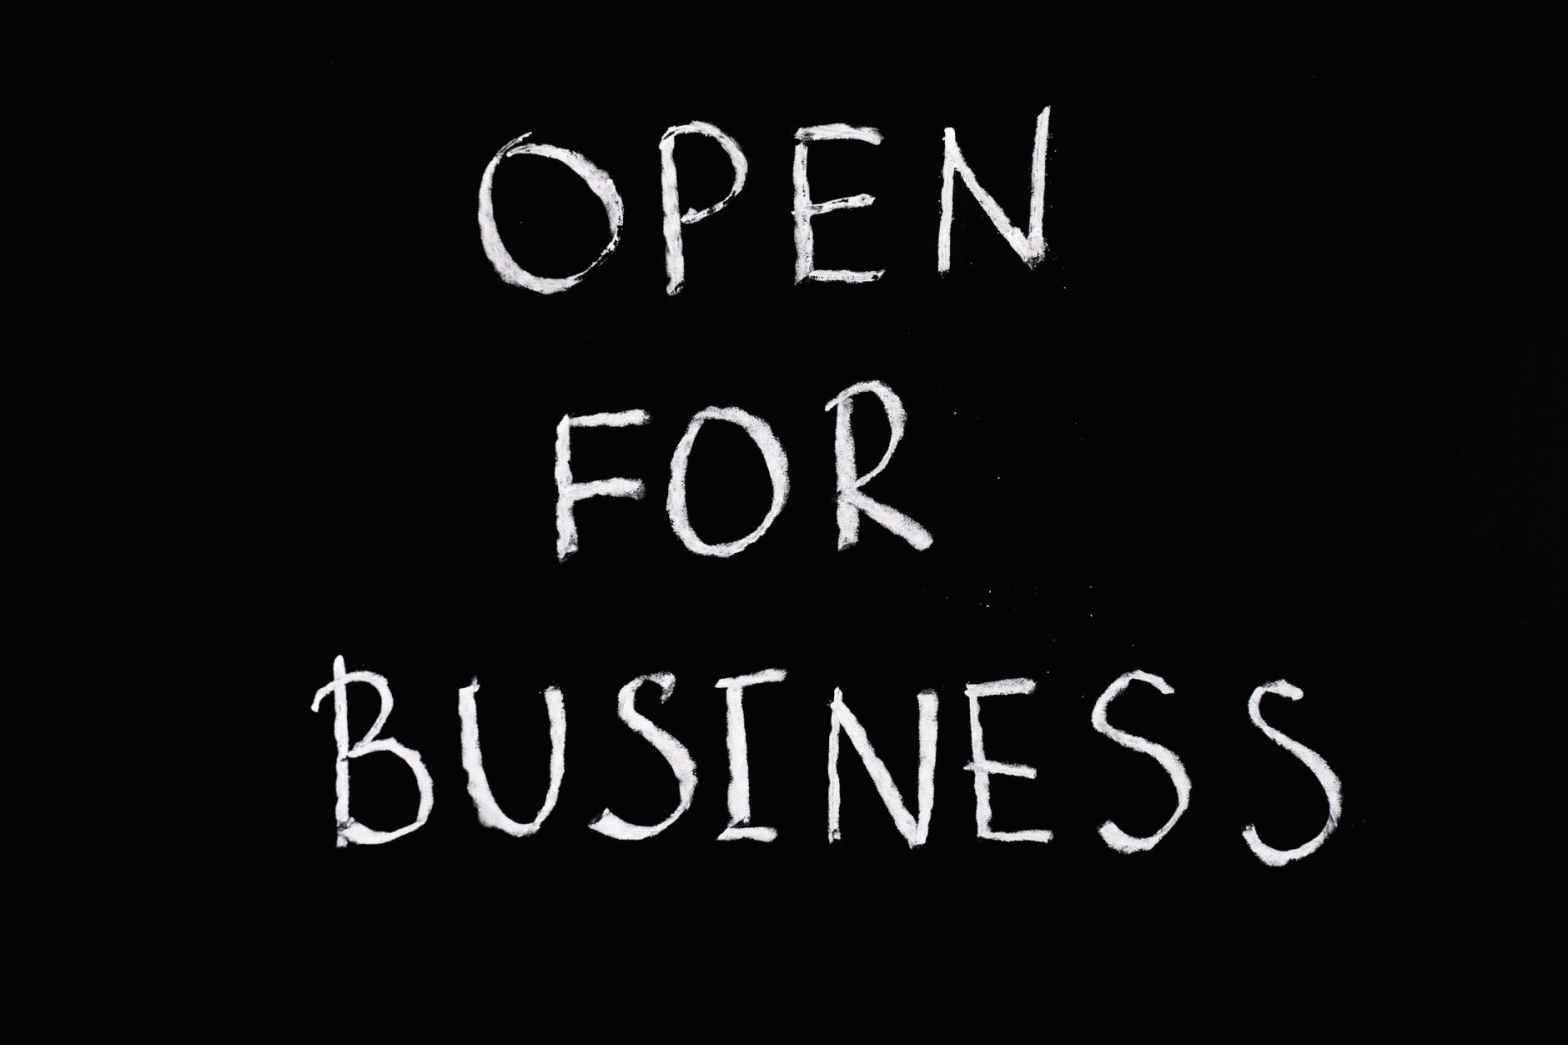 open for business lettering text on black background